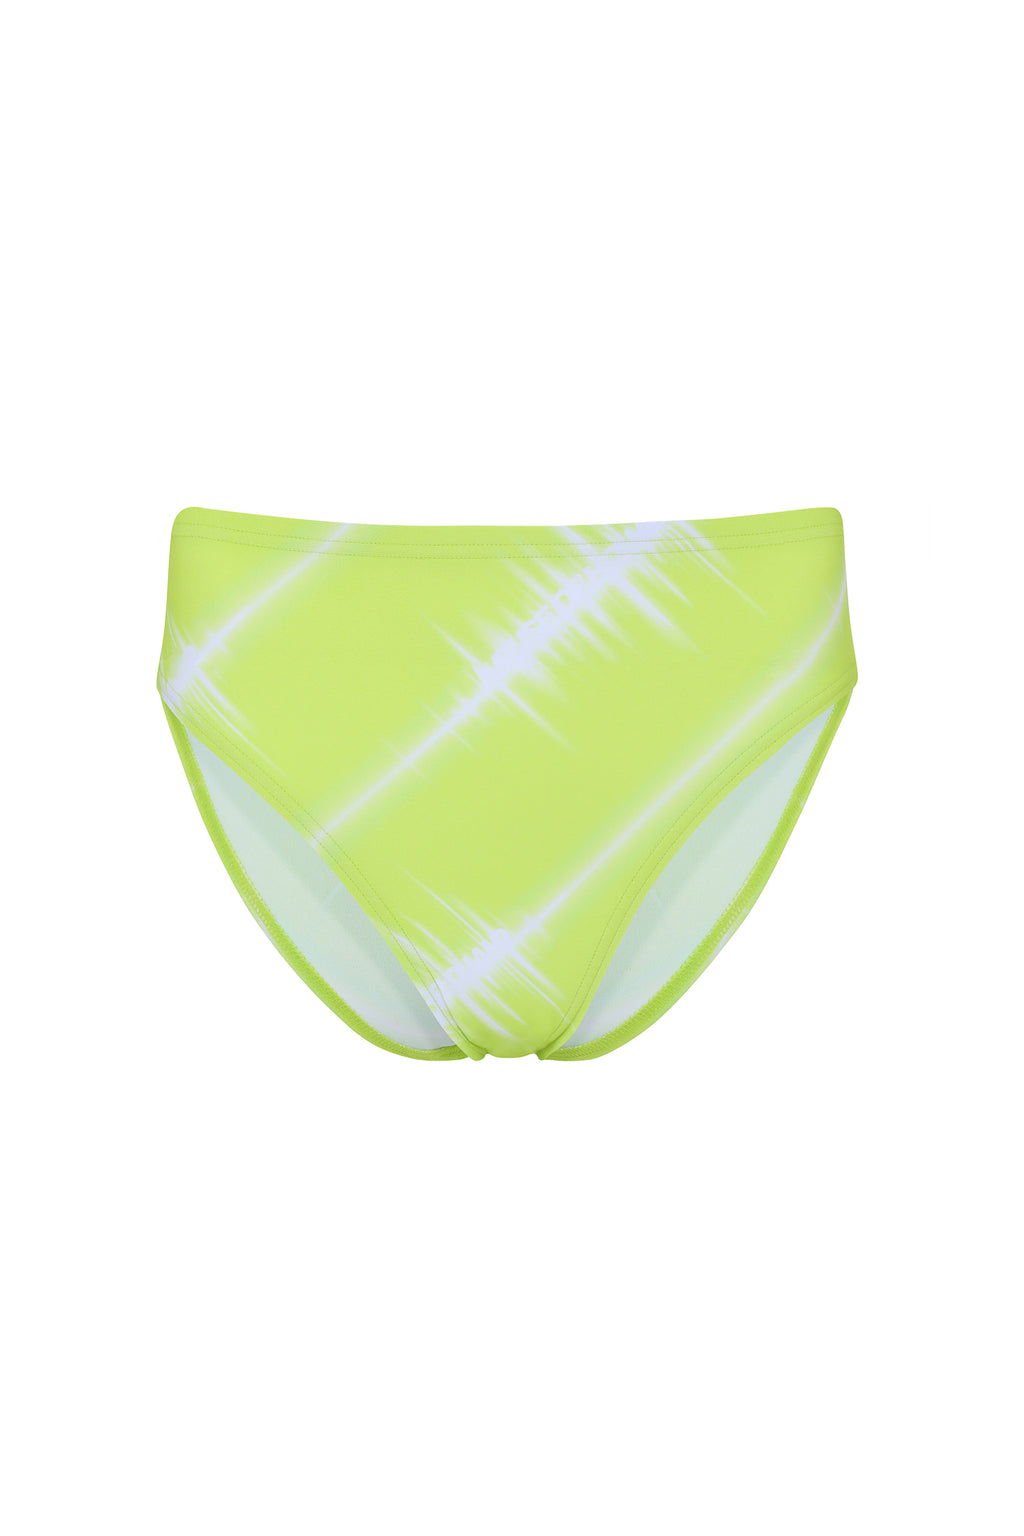 HOH X Speedo Soundwave Swim Set (Lime)